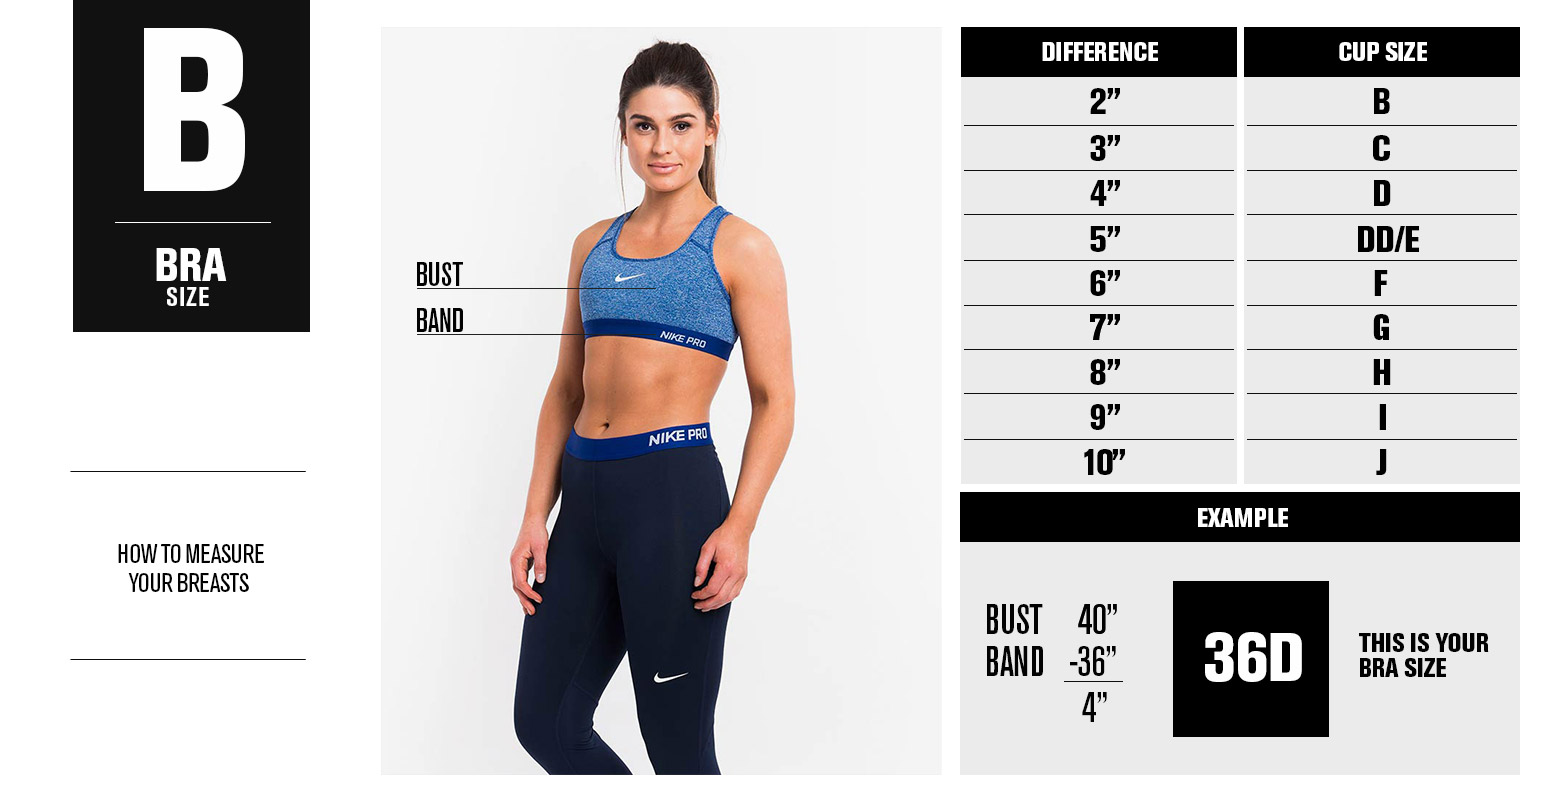 e78cc1c5ed061 How To Choose The Right Sports Bra